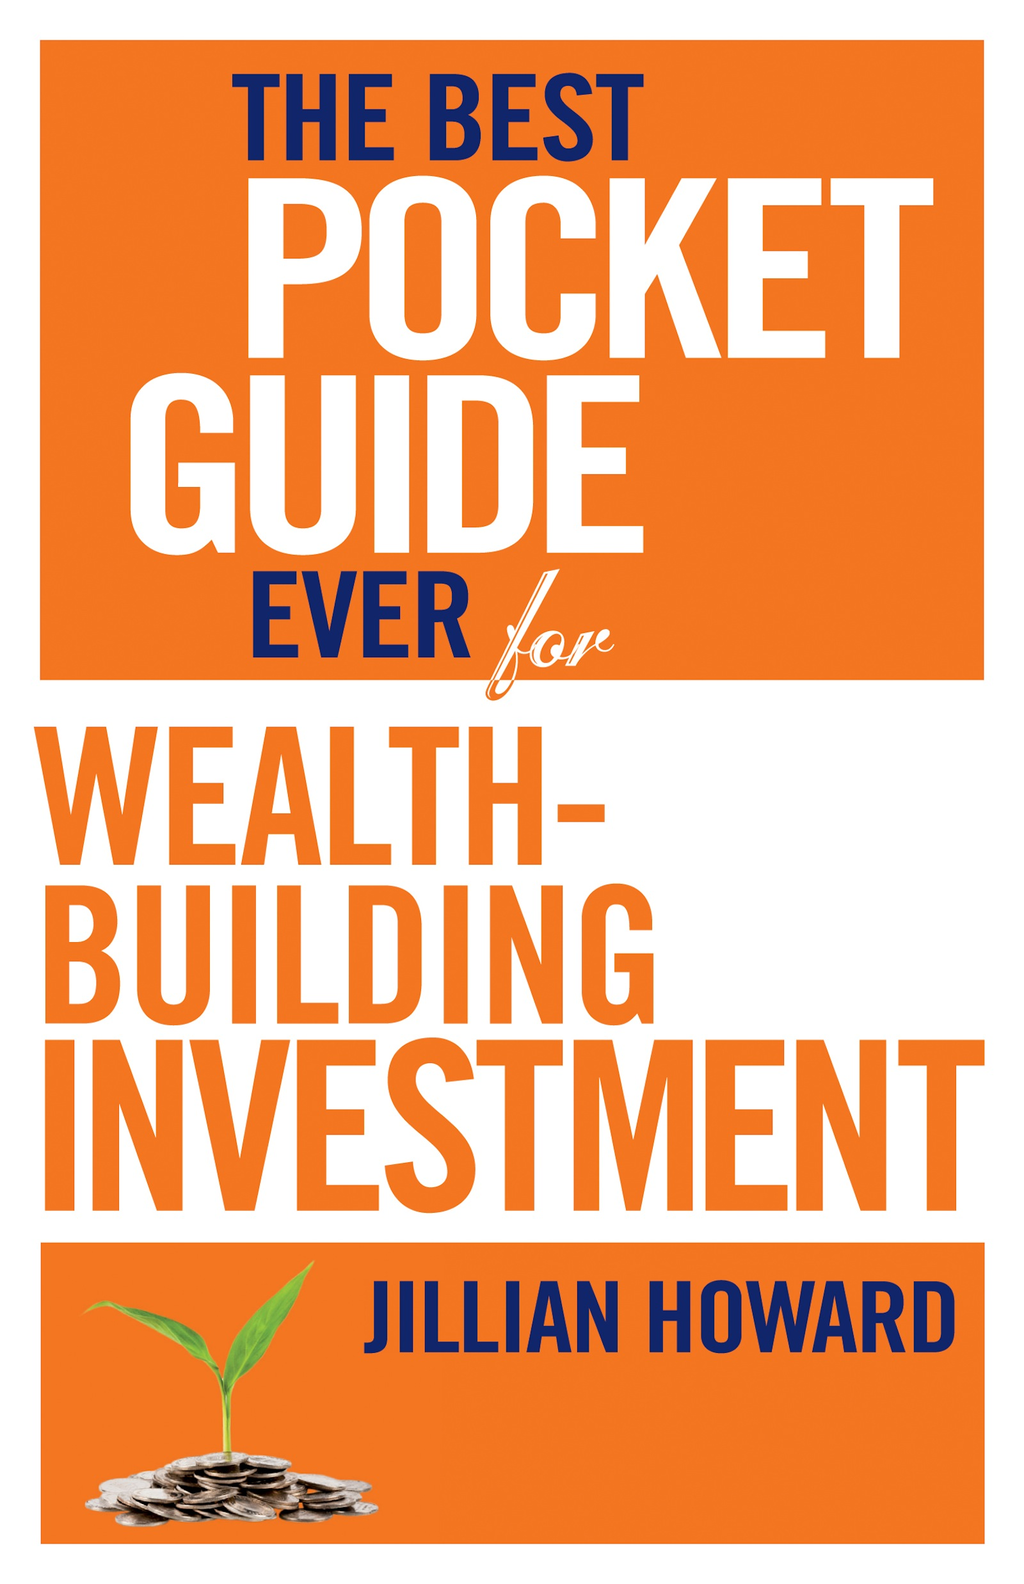 The Best Pocket Guide Ever for Wealth-building Investment